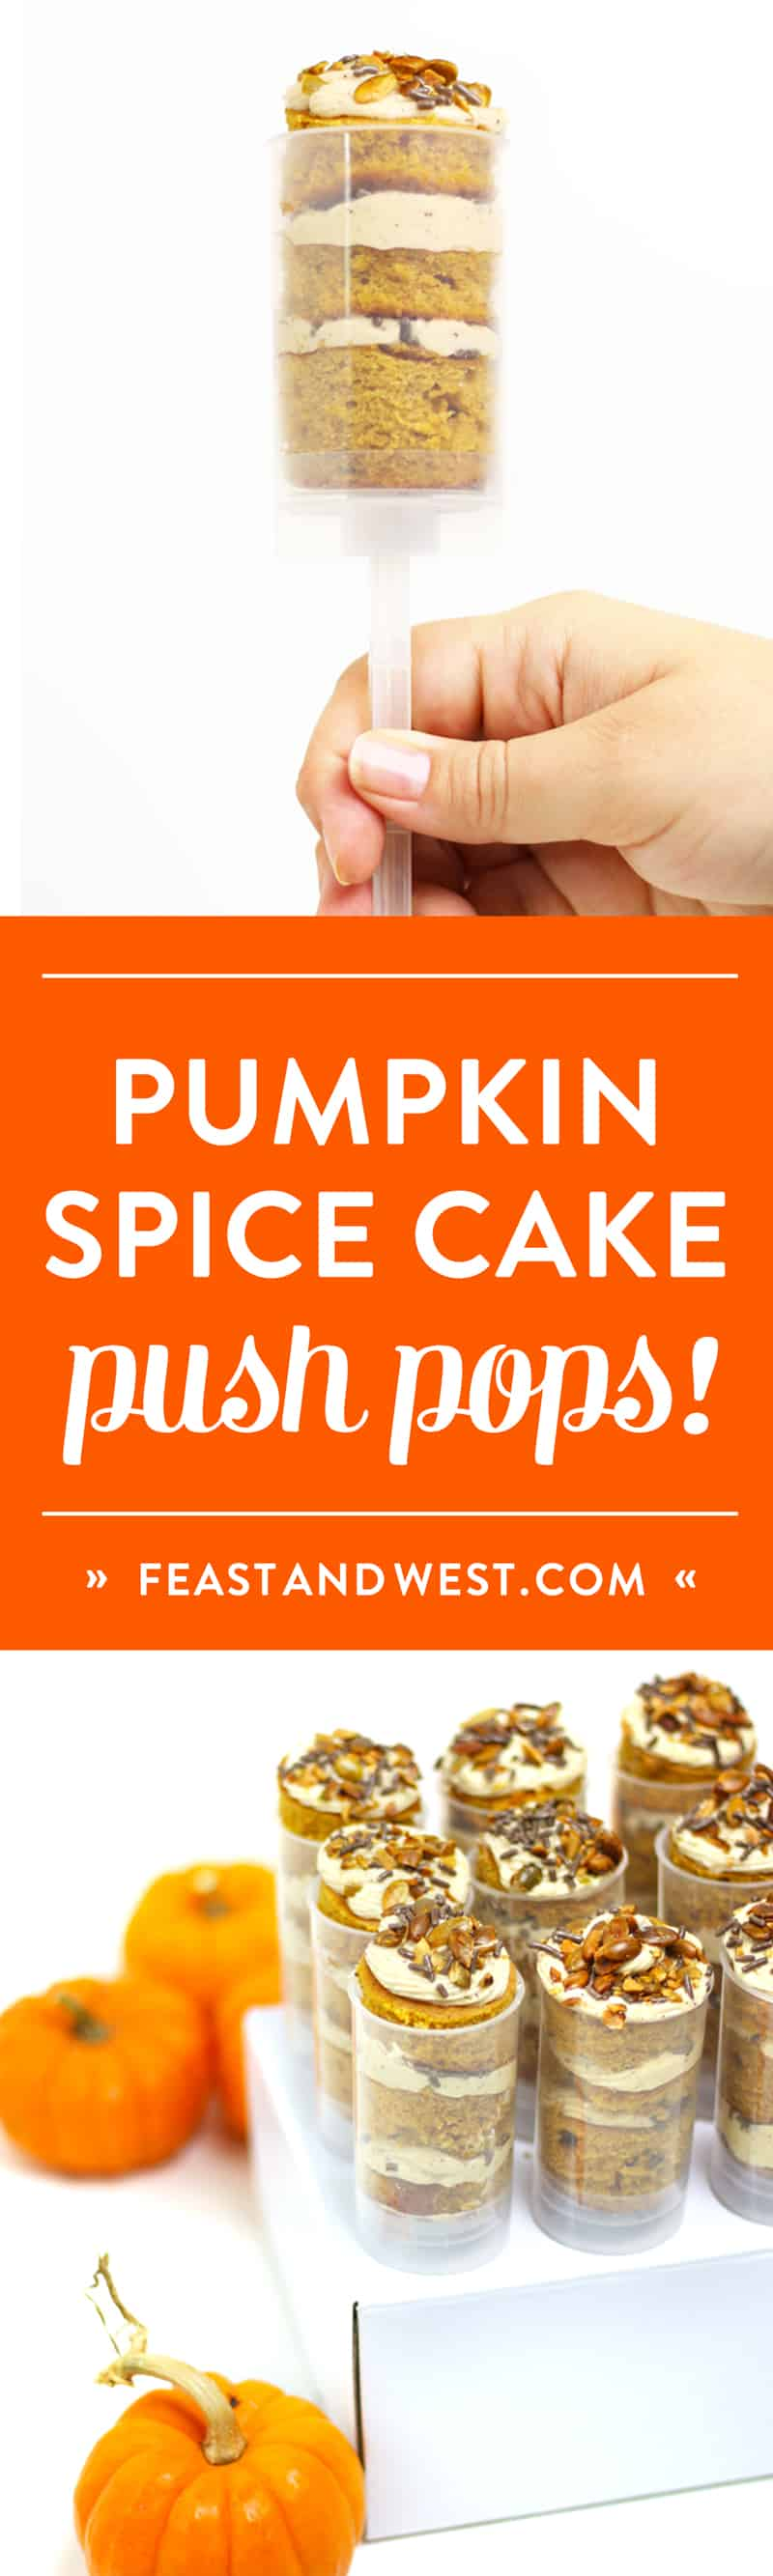 Feel like a kid again with Pumpkin Spice Cake Push Pops! These fun, interactive cupcake pops feature a decadent brown butter bourbon pumpkin cream cheese frosting. (via feastandwest.com)